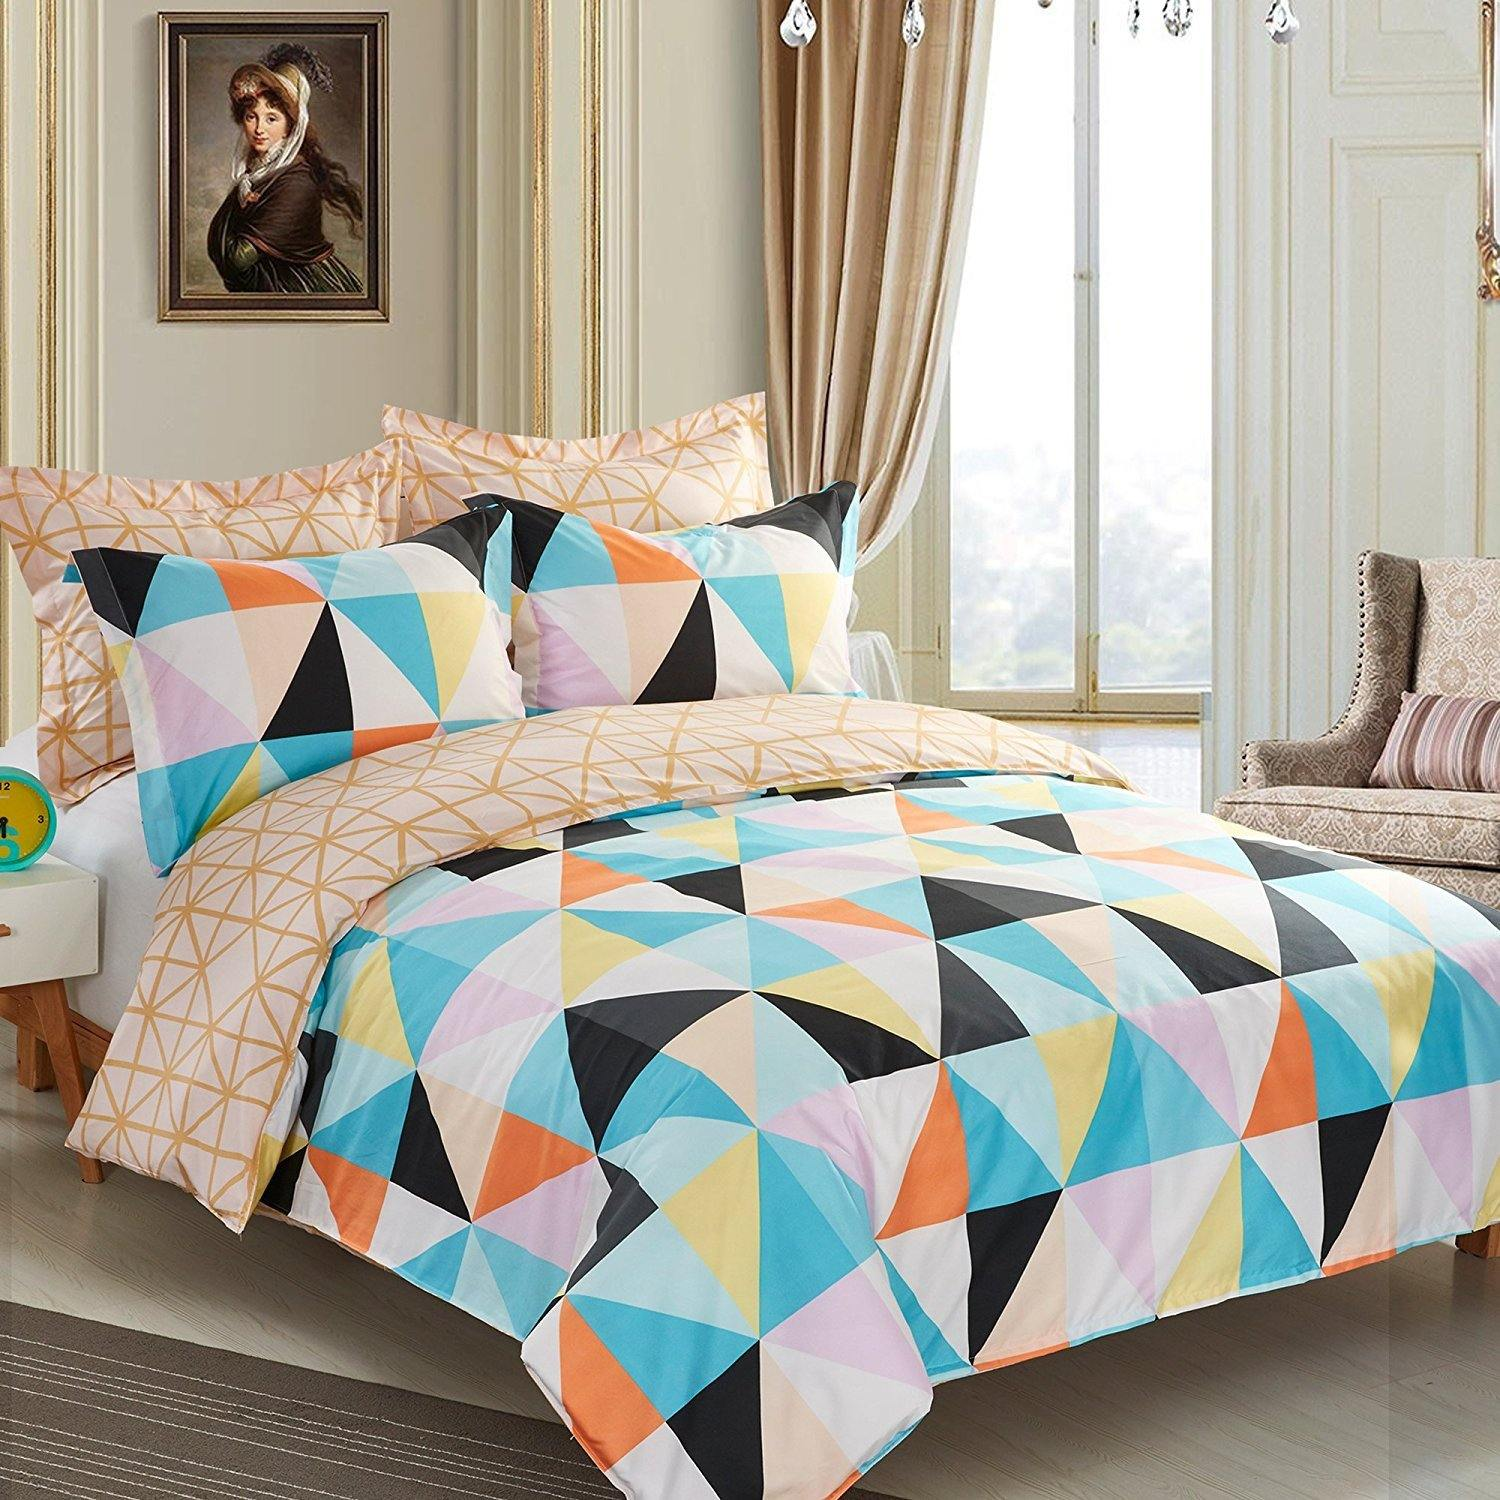 NTBAY 5 Pieces Reversible Fashionable and Simple Geometric Pattern Printed Microfiber Duvet Cover Set with Hidden Zipper - NTBAY